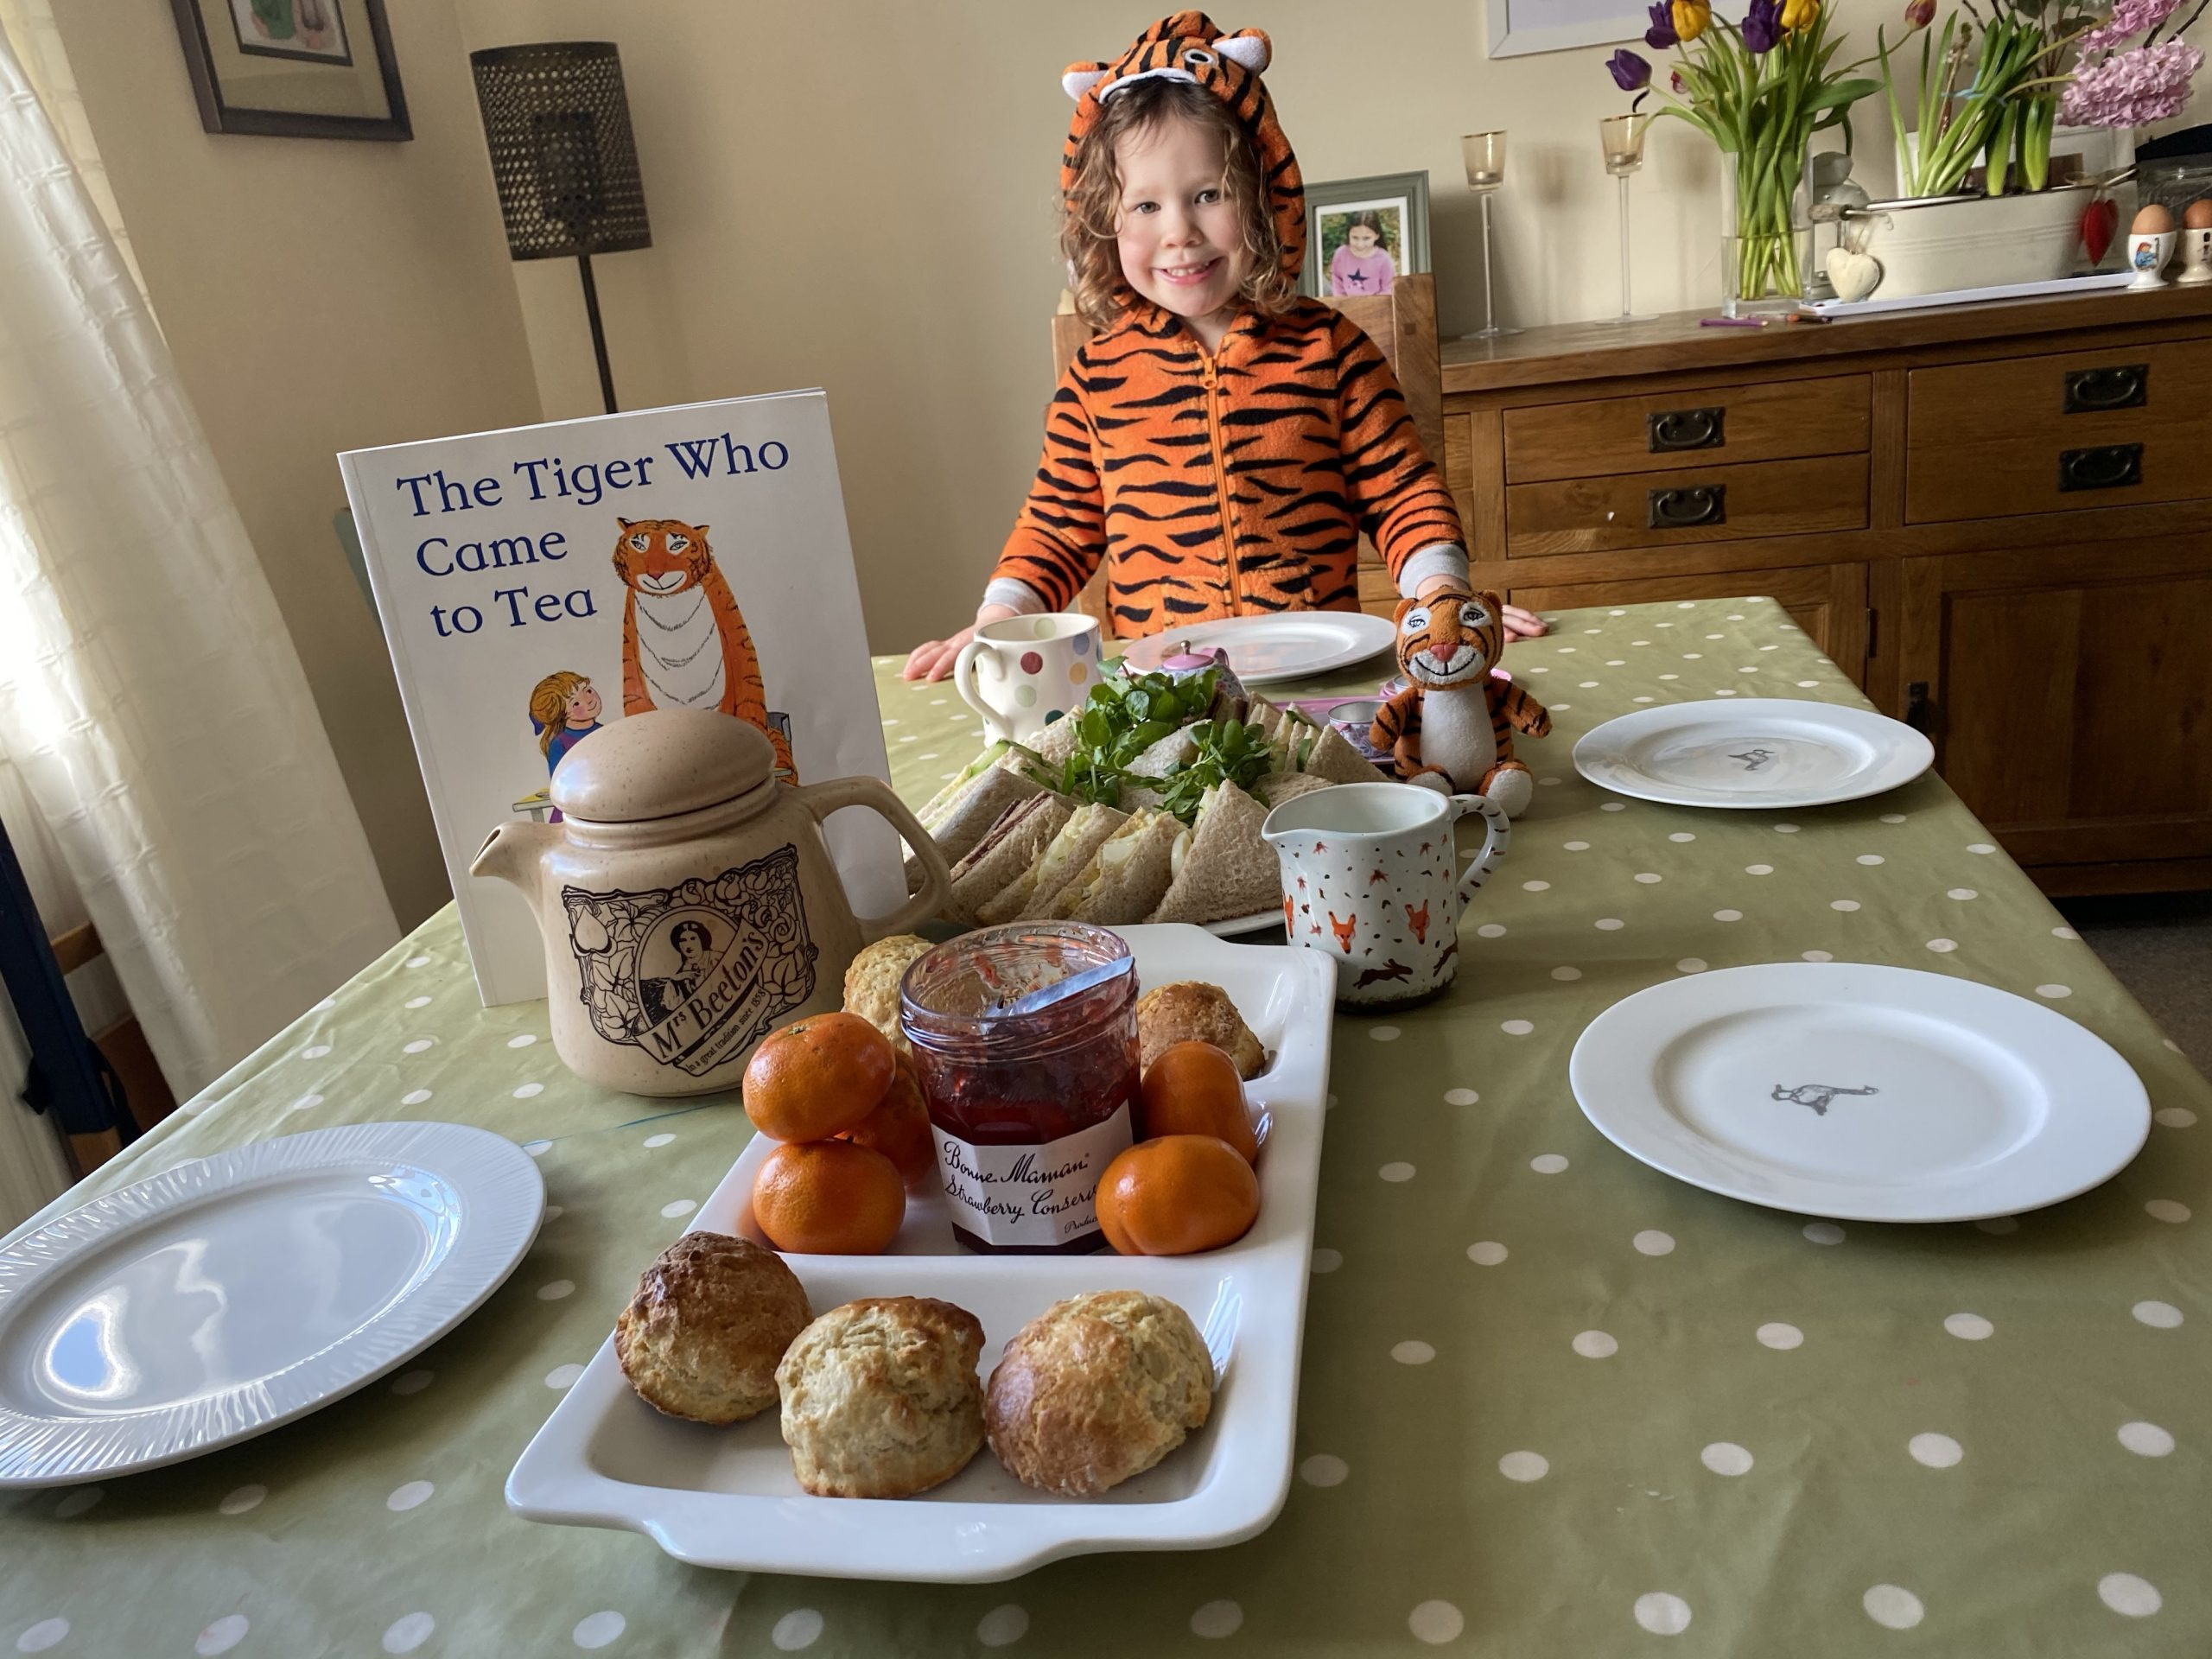 Tiger who came to tea party ideas with a little girl eating tea dressed as a tiger